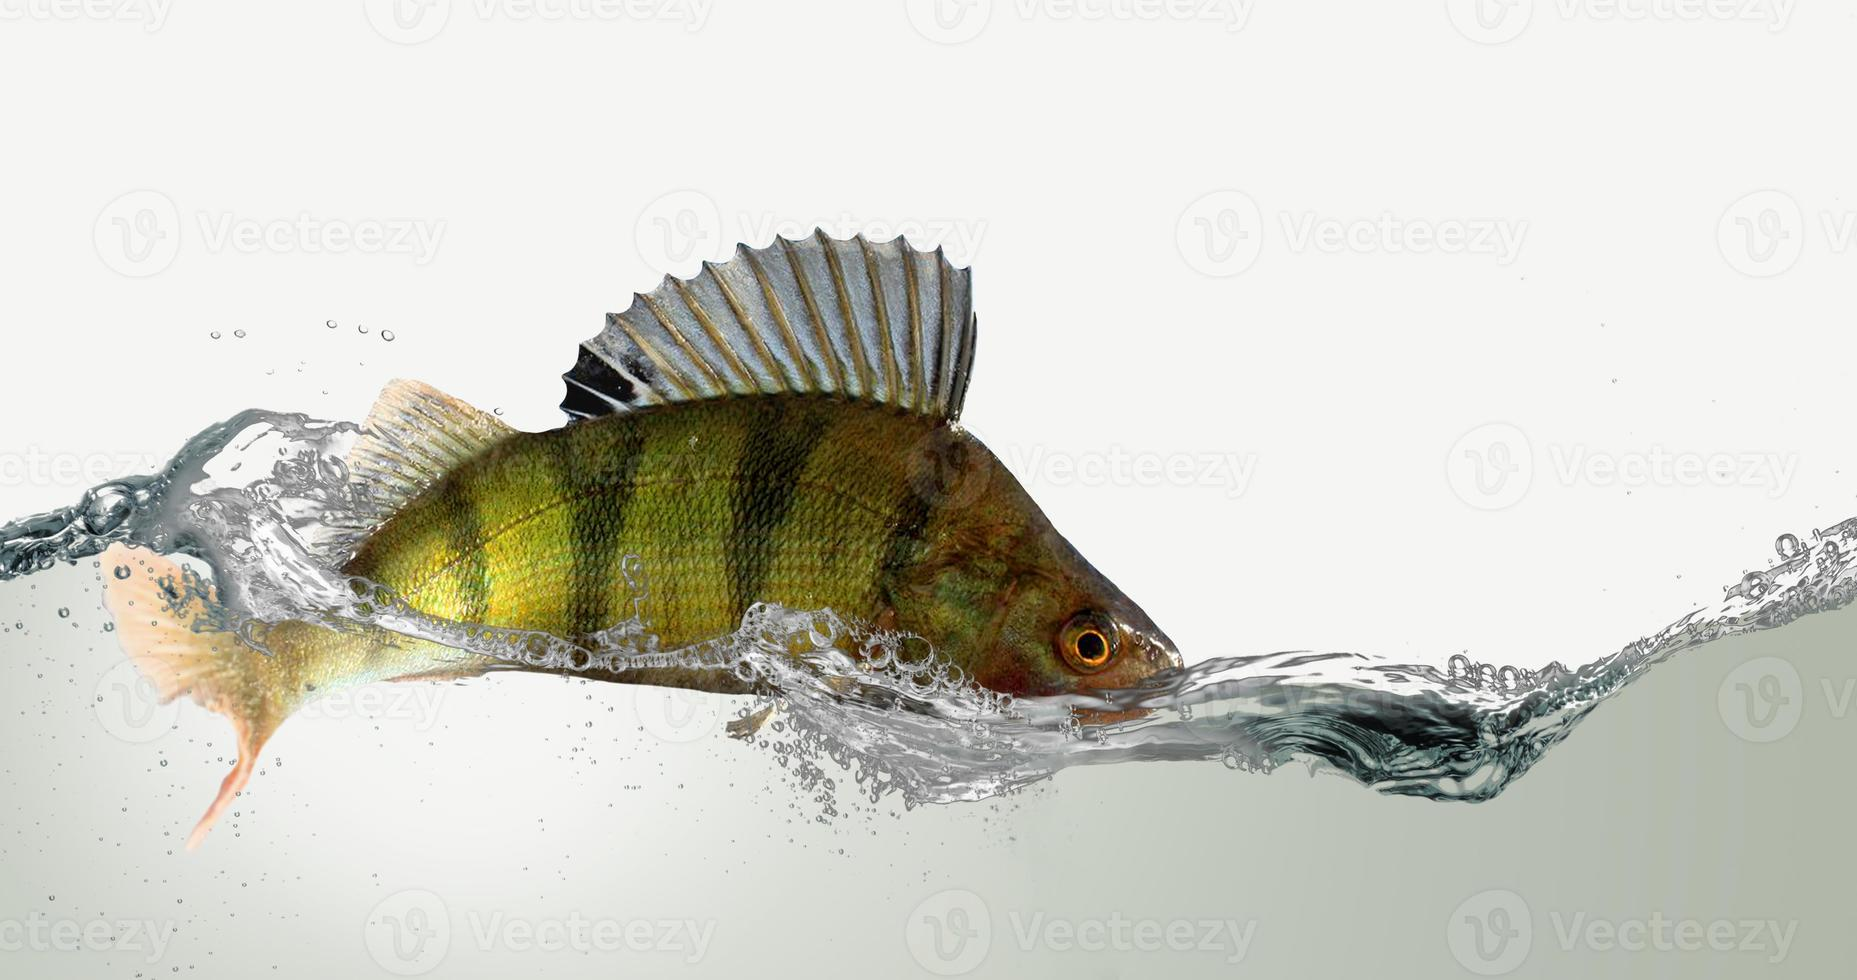 River perch. photo